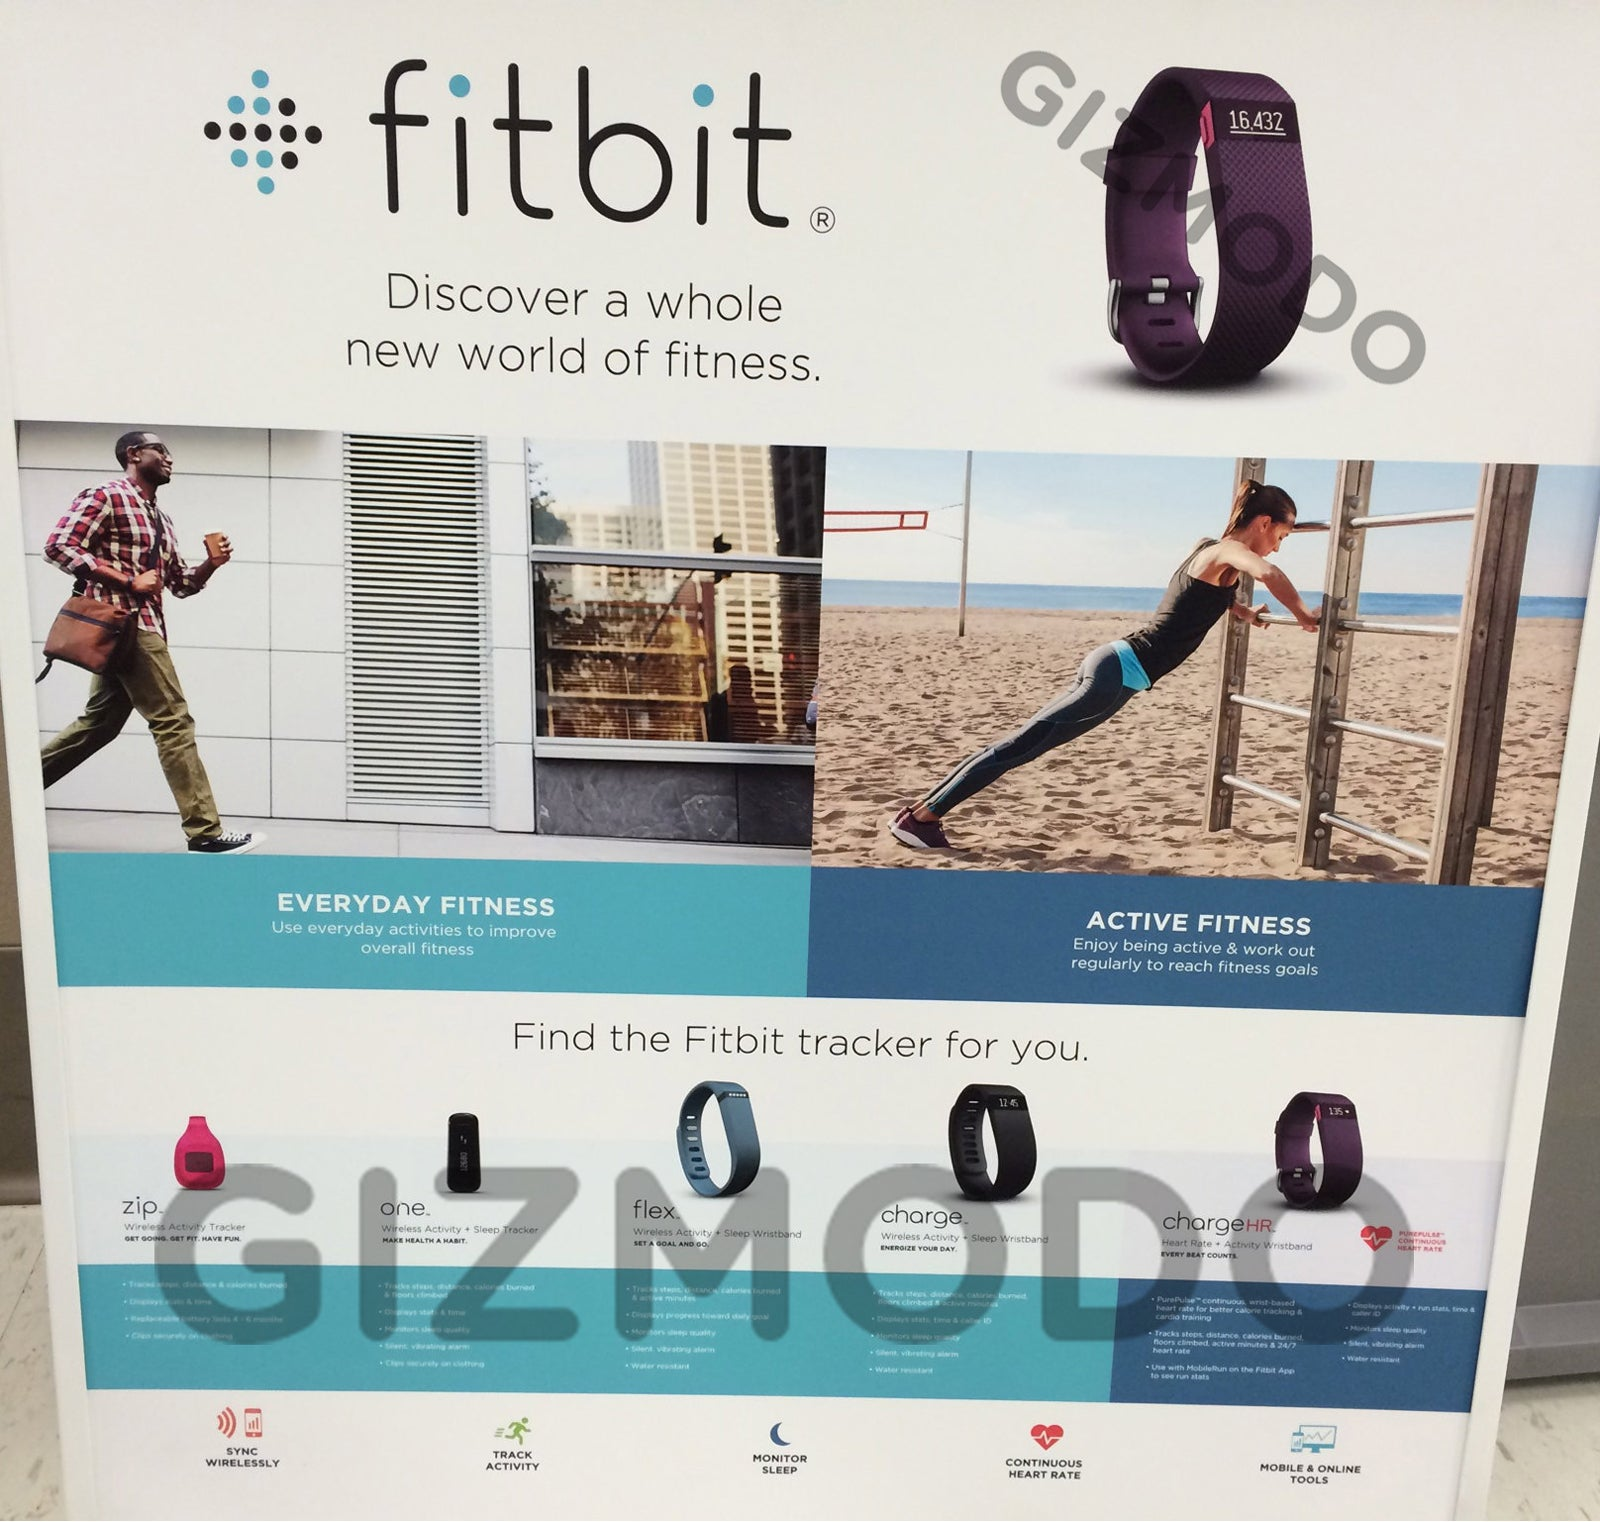 Exclusive: Fitbit Charge and Charge HR Images and Full Features List